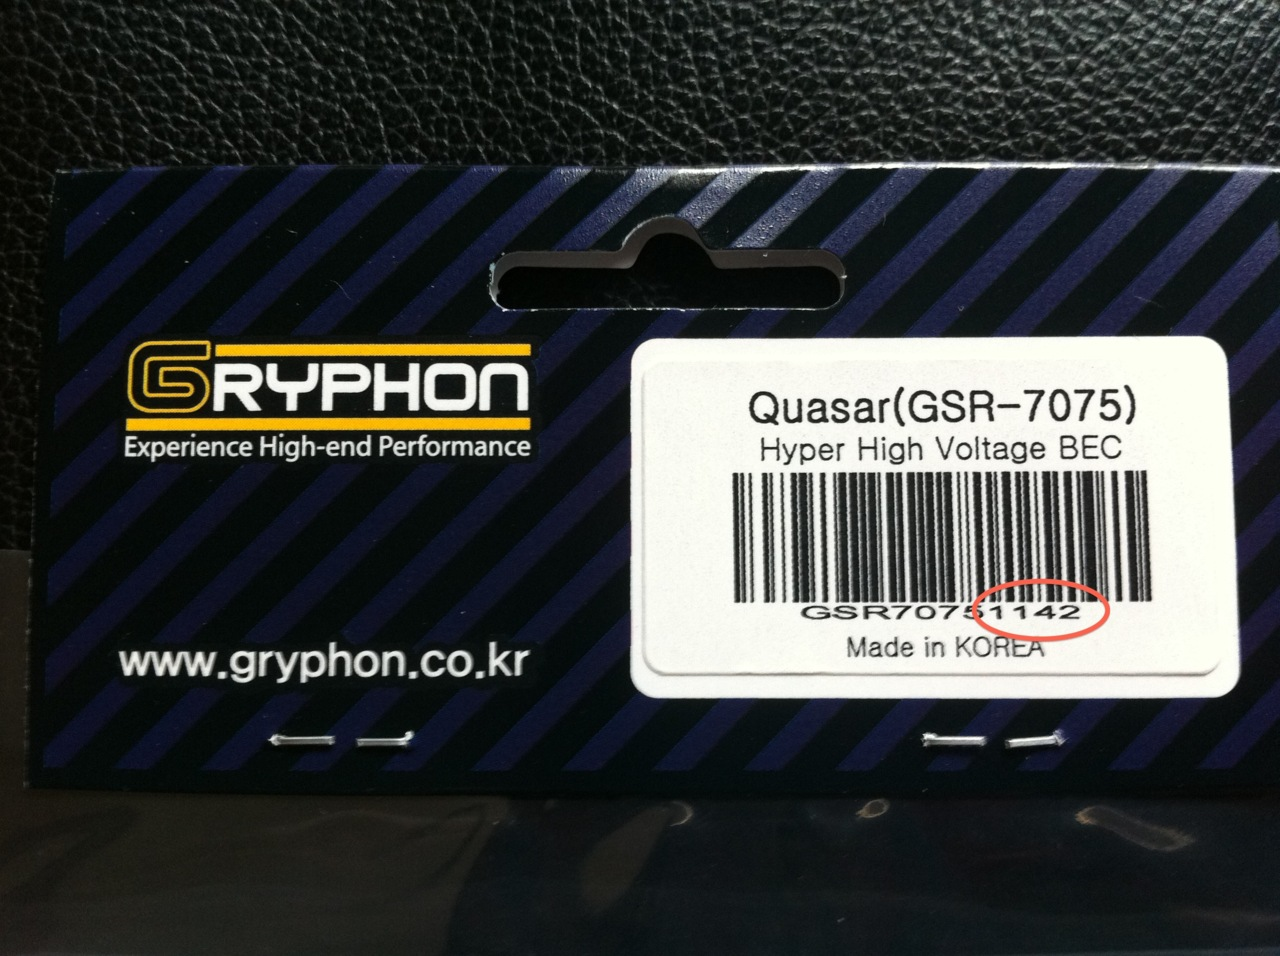 Gryphon has recalled two production batches of the  Gryphon Quasar GSR7075 20A High Voltage BEC . If your header card ends in  1136  or  1137  then you have a defective unit. Gryphon is offering free replacement of any defective units. The defective batches were stocked by ReadyHeli & ExperienceRC in the US.    http://www.helifreak.com/showpost.php?p=3415782&postcount=283